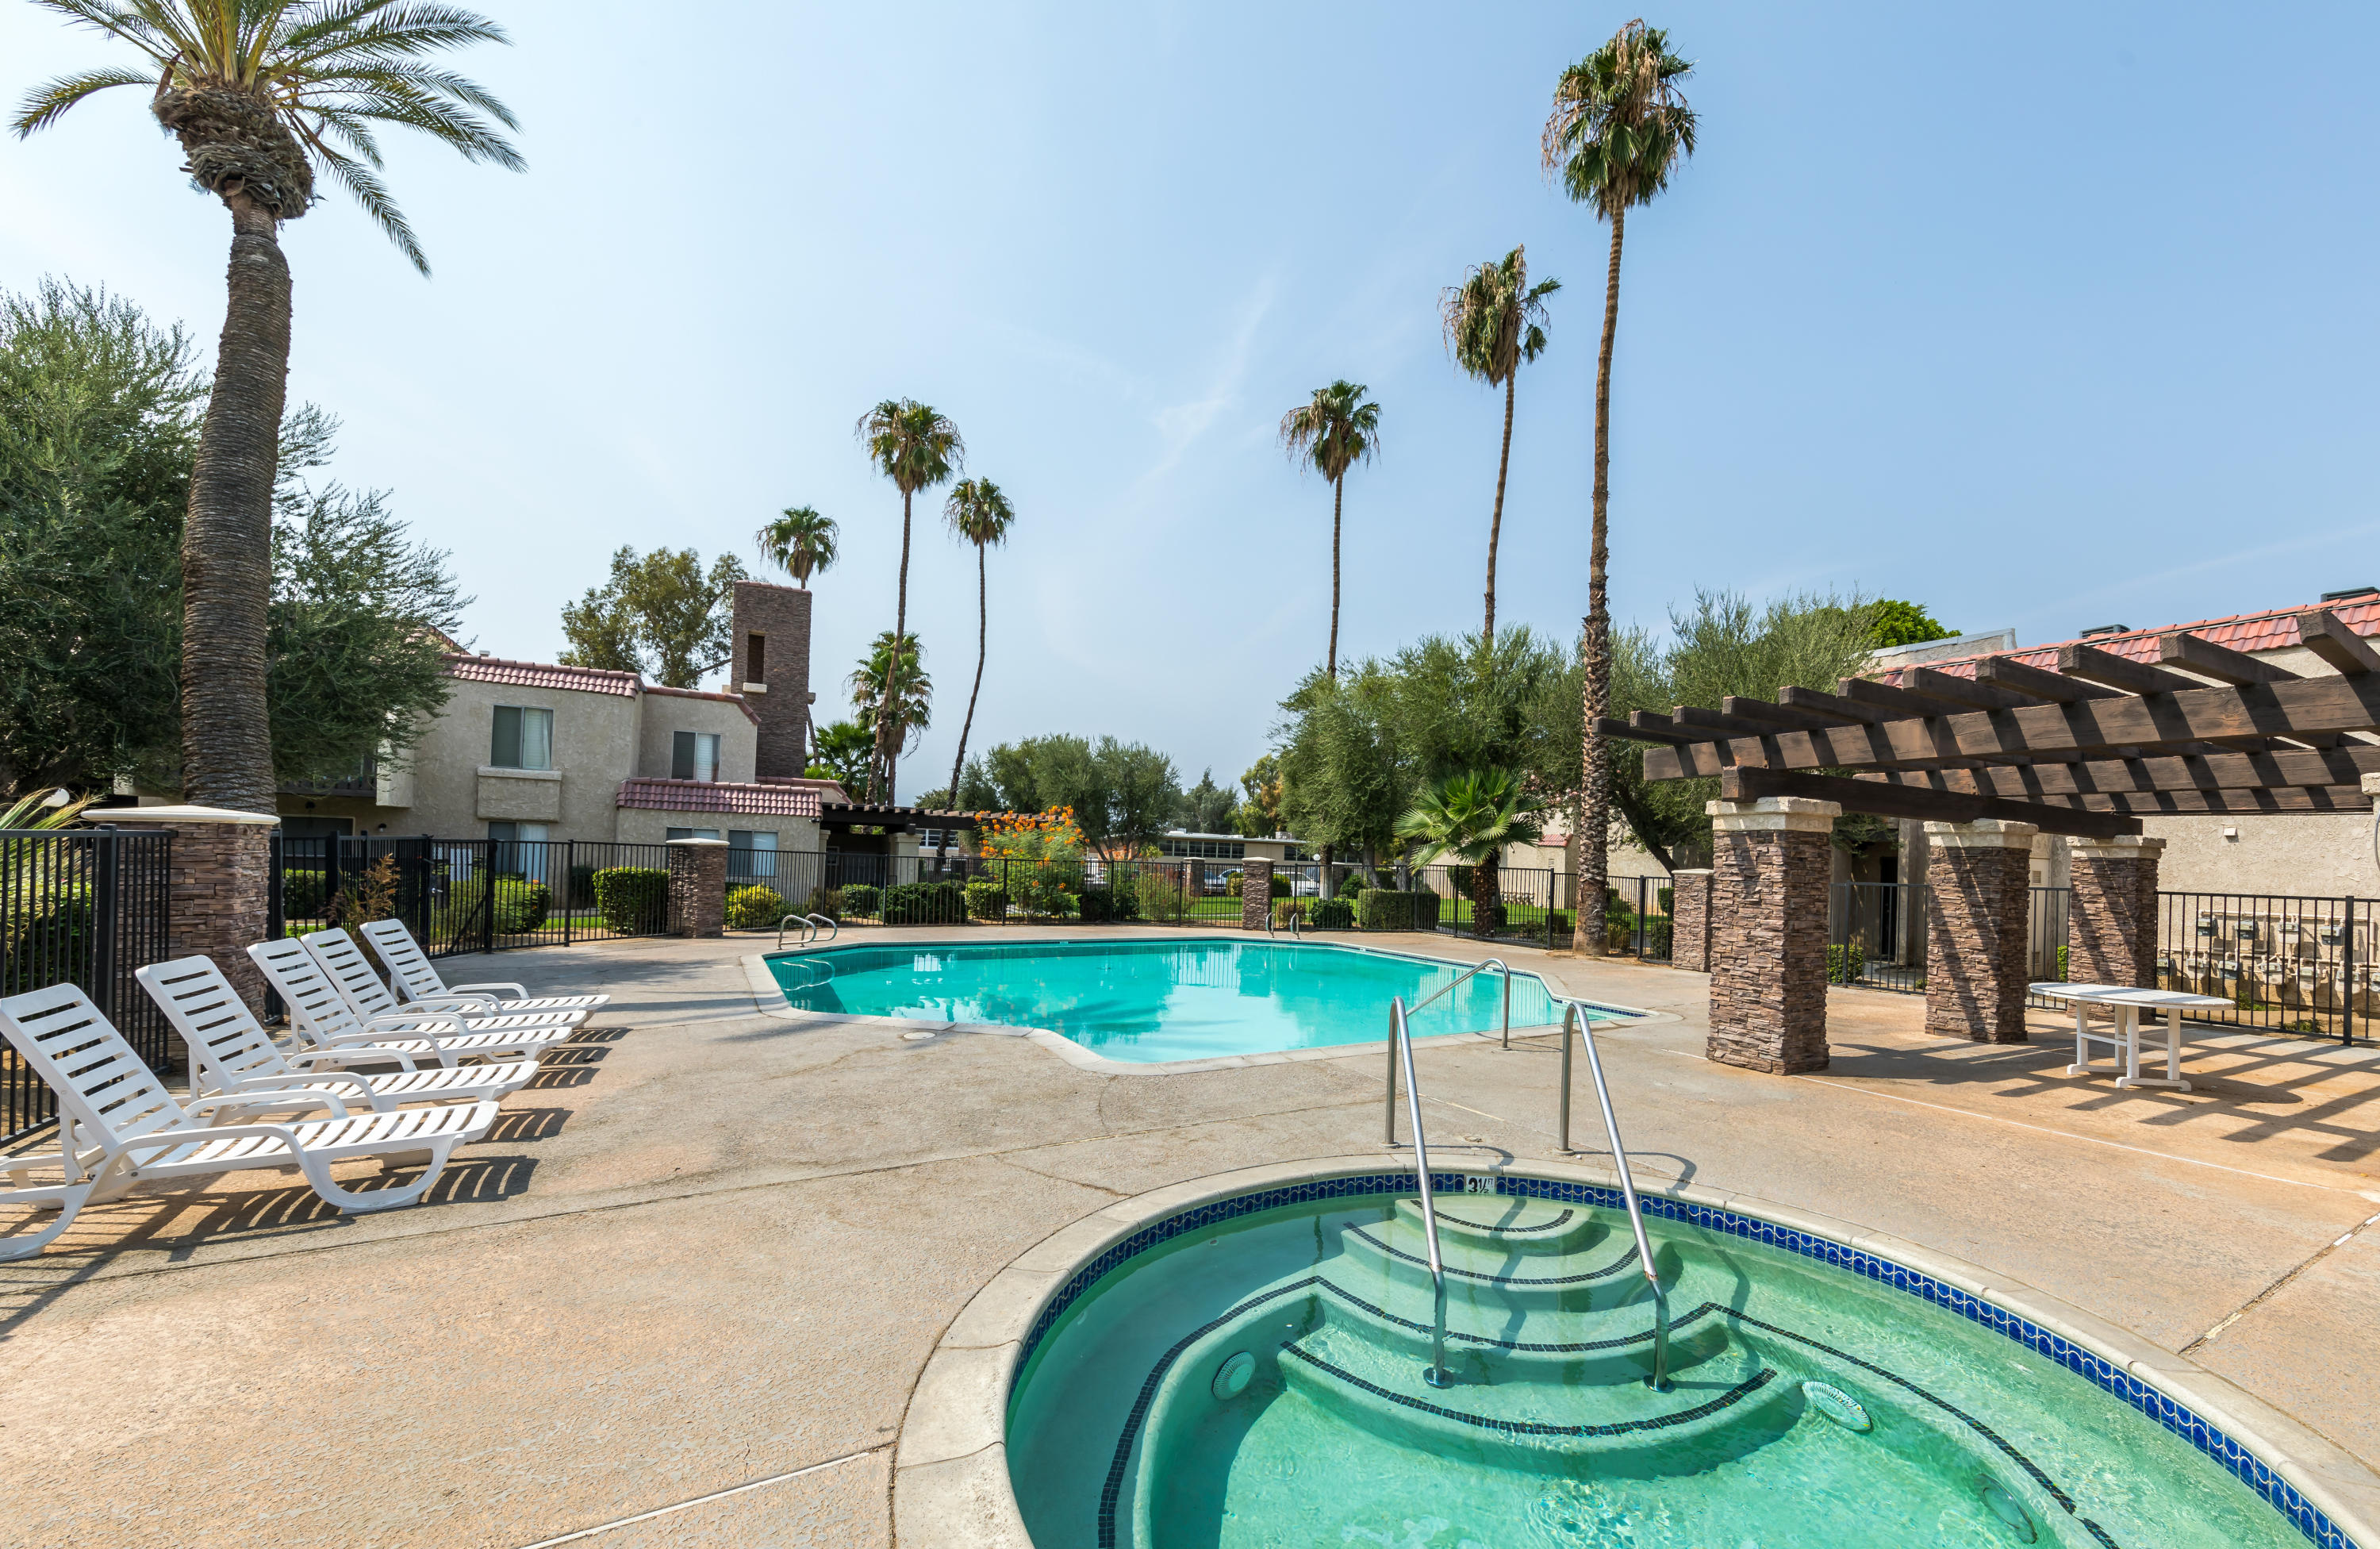 Very Cute condo located in the Tres Flores Community. This upper unit condo includes laminate flooring throughout, kitchen features granite countertops, white cabinets, gas range, private balcony off the living room. Conveniently located next to the community pool and laundry facility.